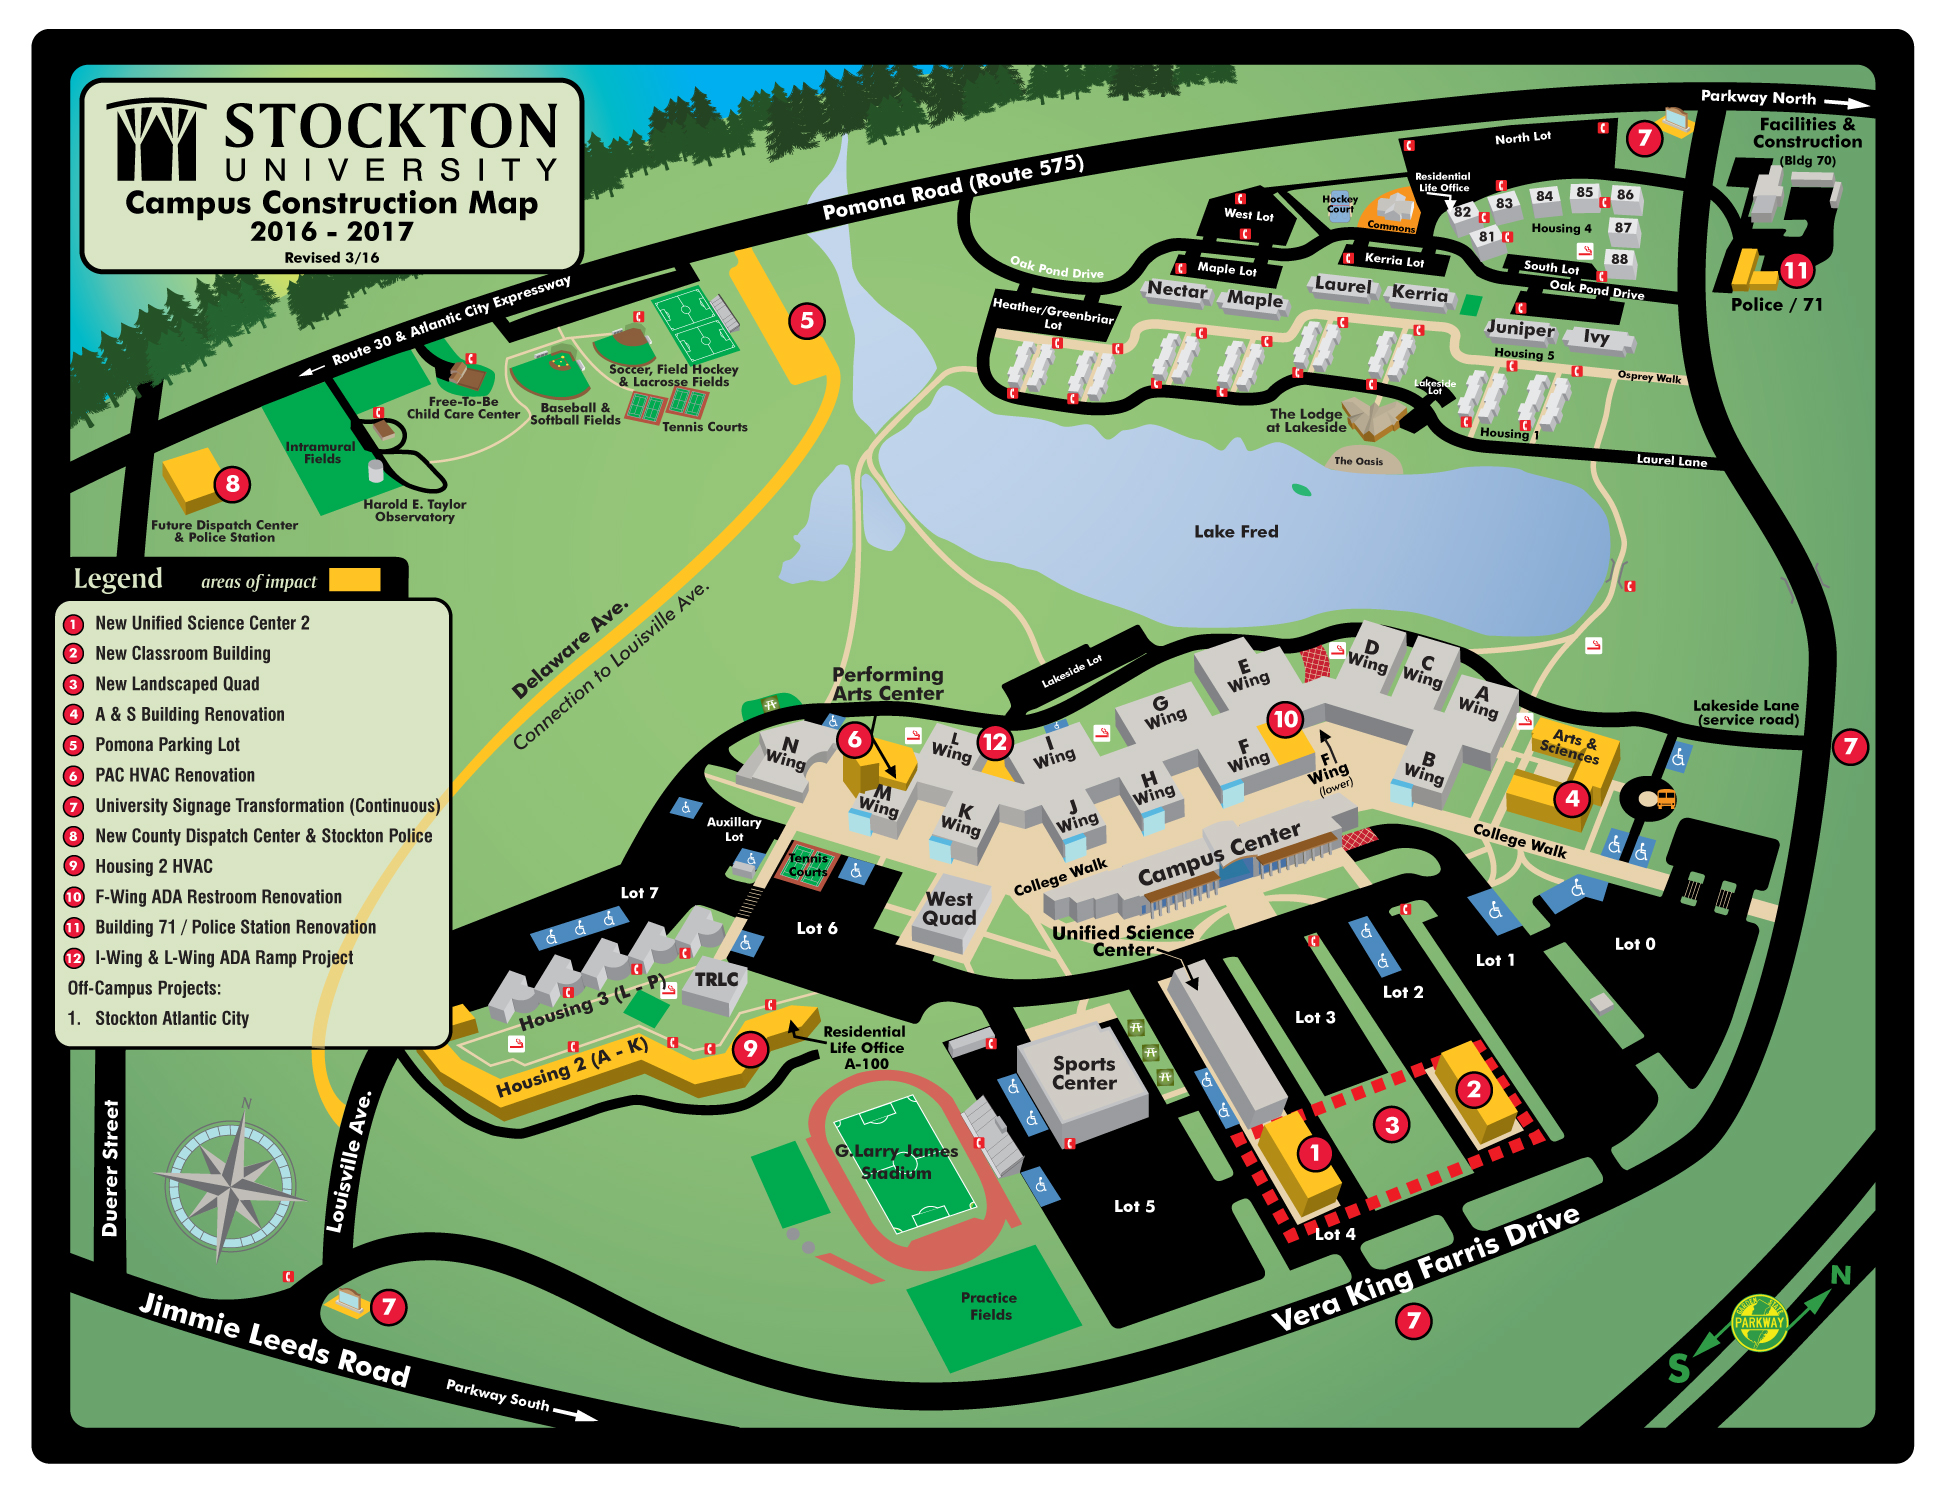 Maps Directions Parking Transportation Stockton University